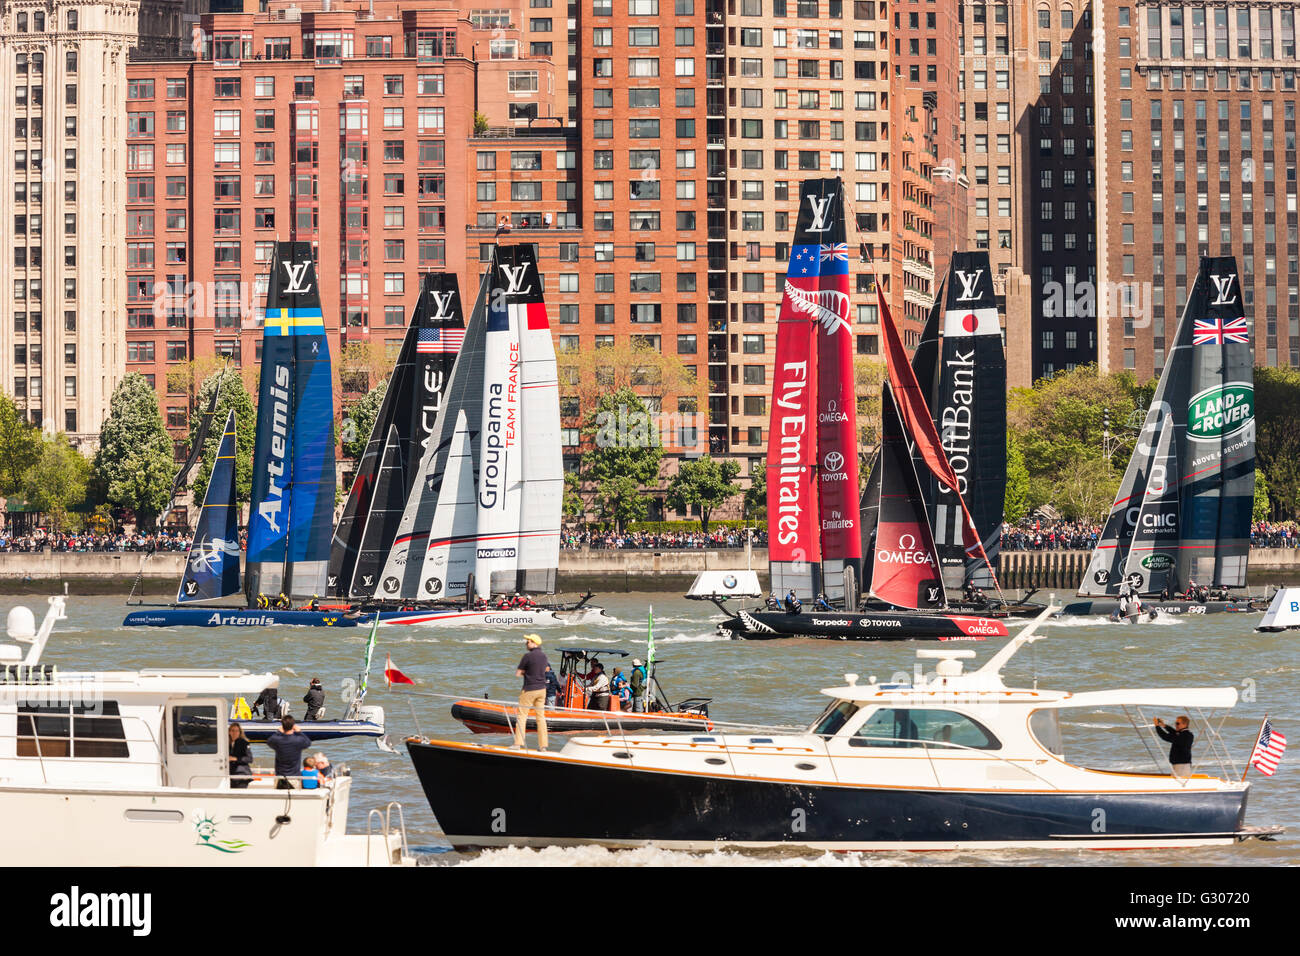 Louis Vuitton America's Cup World Series team catamarans race on the Hudson River course surrounded by spectator - Stock Image